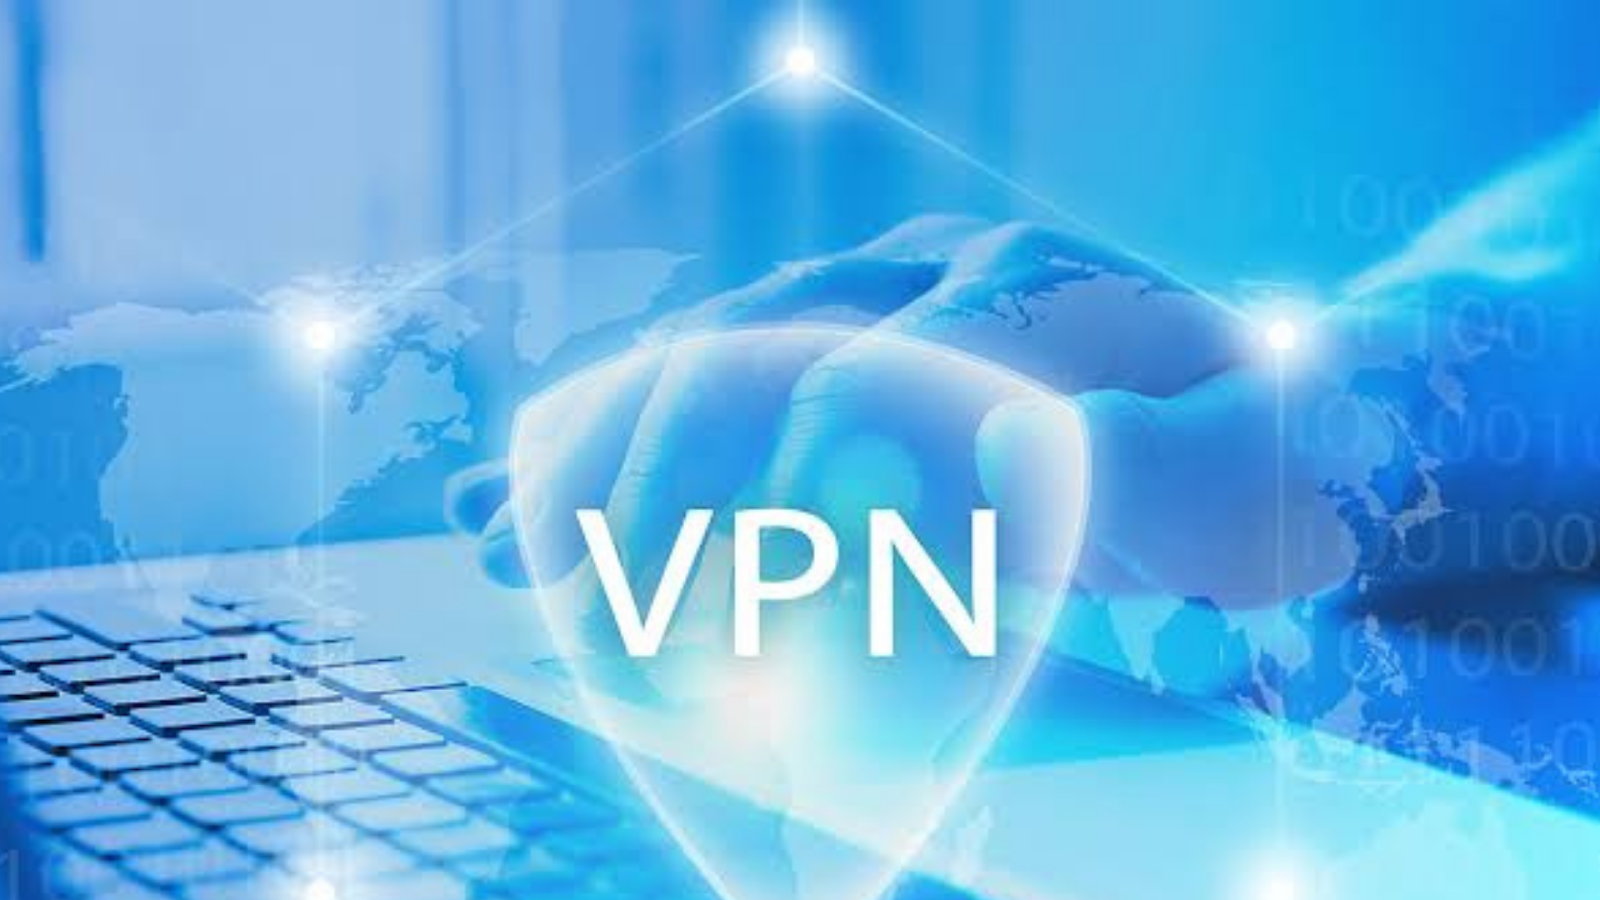 Why are so many in India using a VPN?